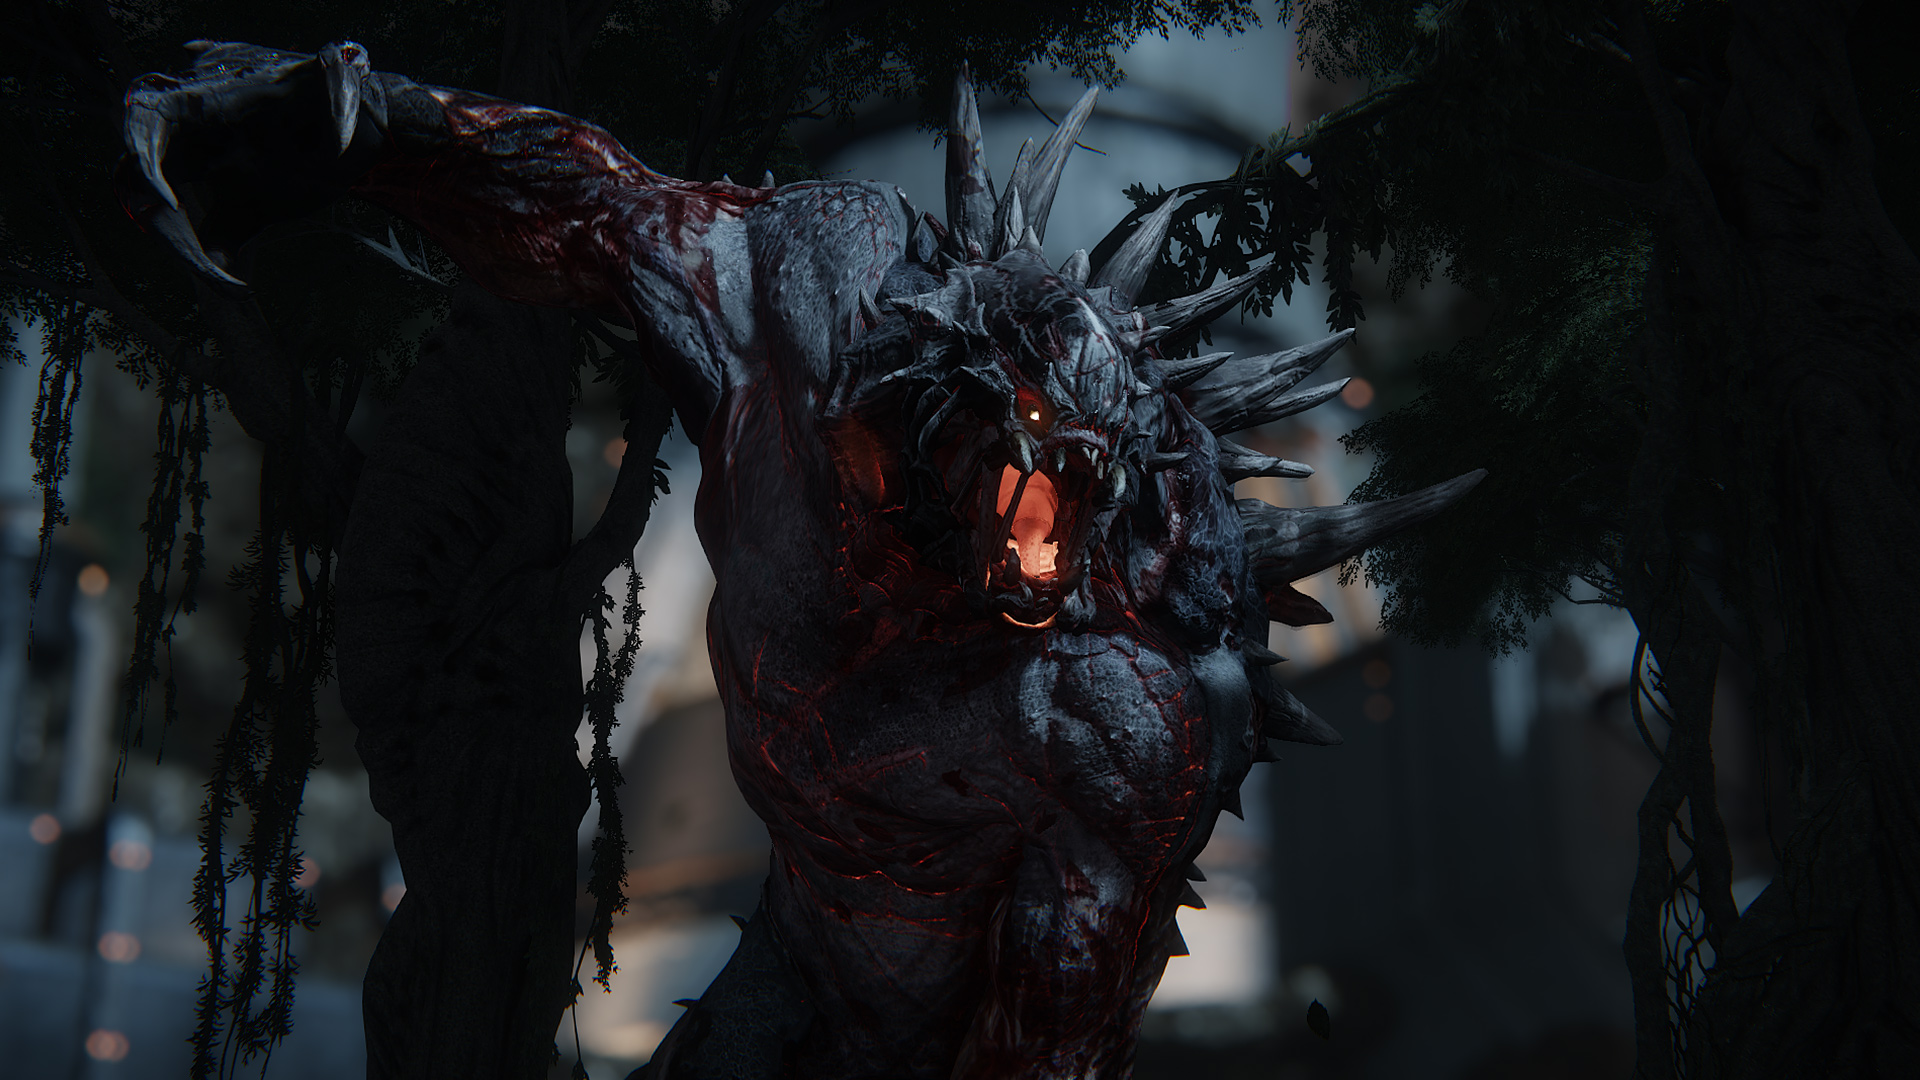 Designing Evolves terrifying video game monsters The Verge 1920x1080